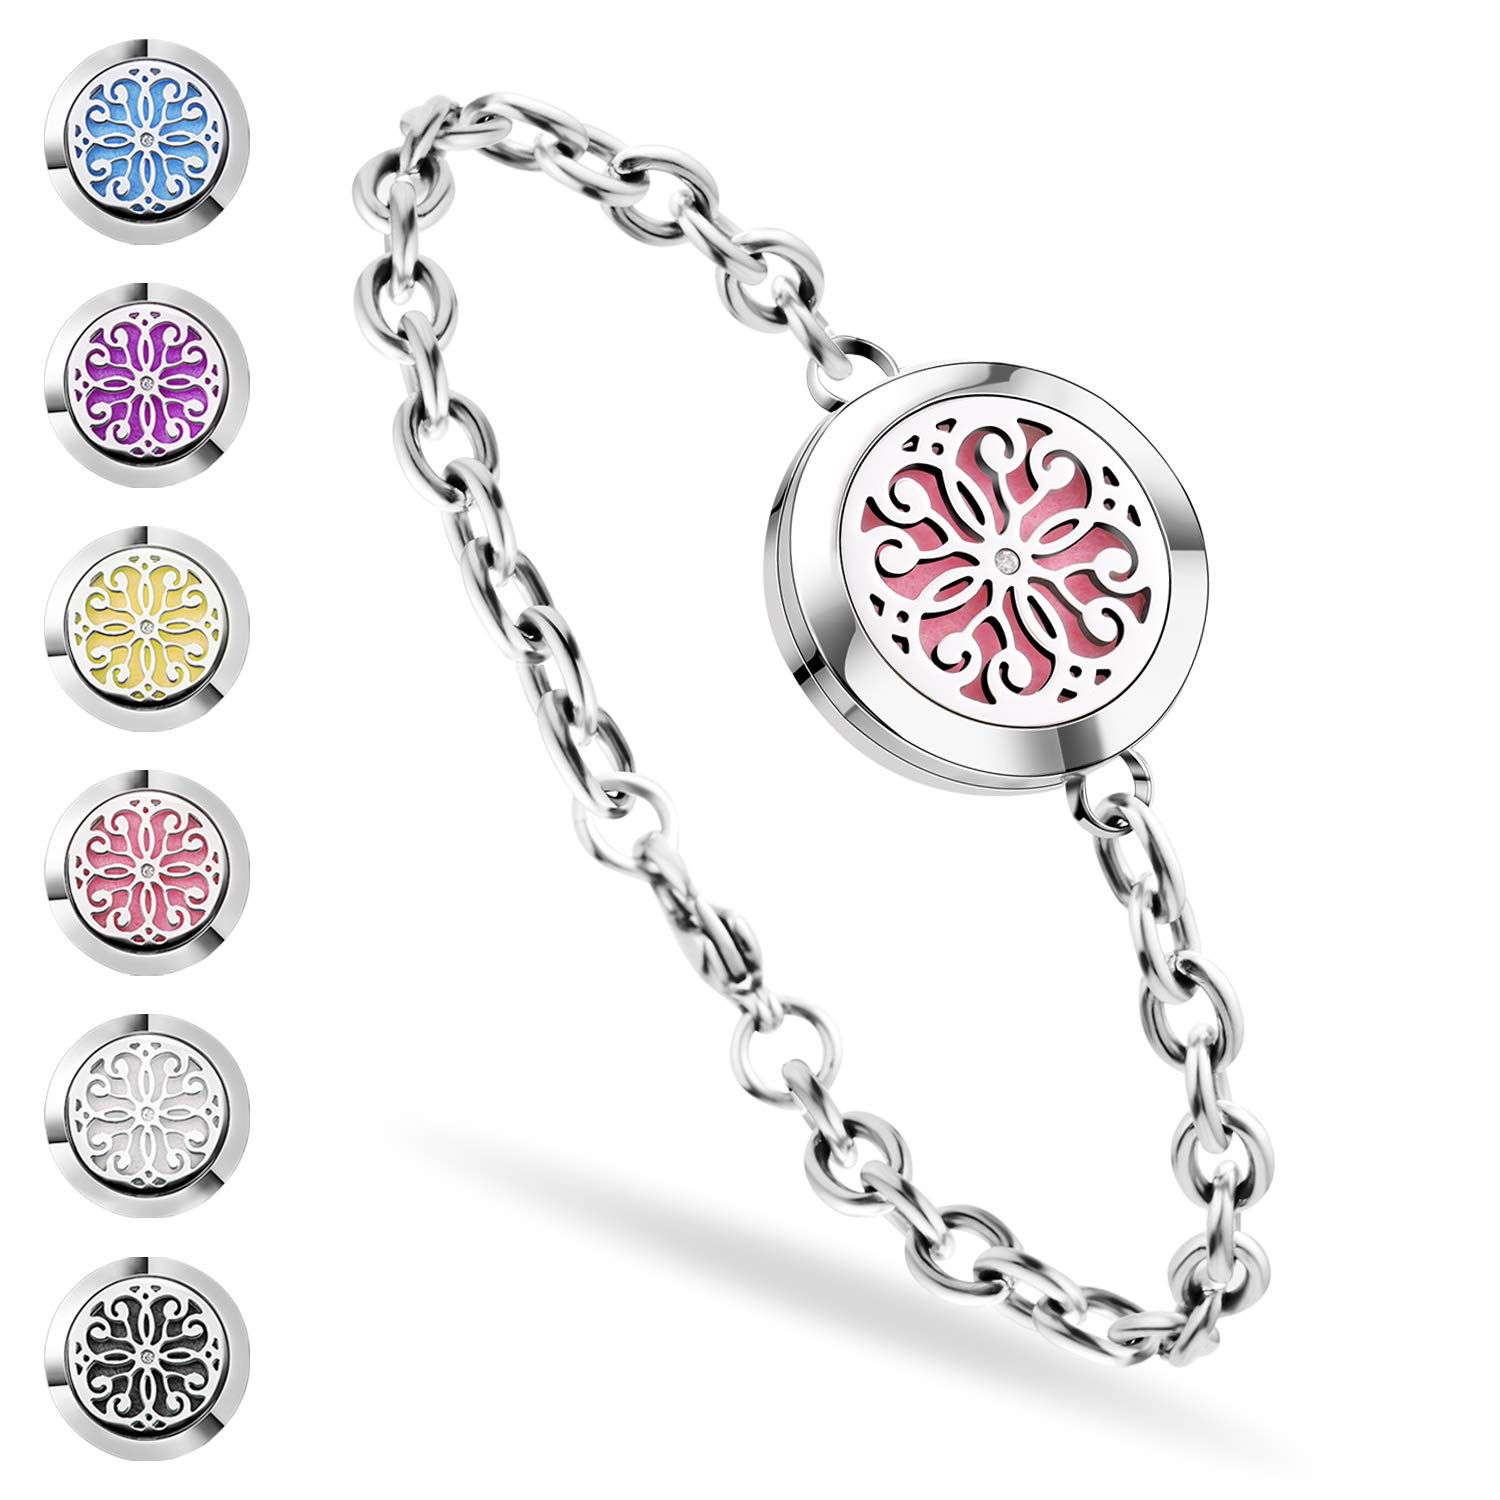 Aromatherapy Bracelet, Shovan Essential Oil Diffuser Bracelet Stainless Steel Aromatherapy Locket Bracelets for Women with 6 Color Pads,Girls Women Jewelry Set